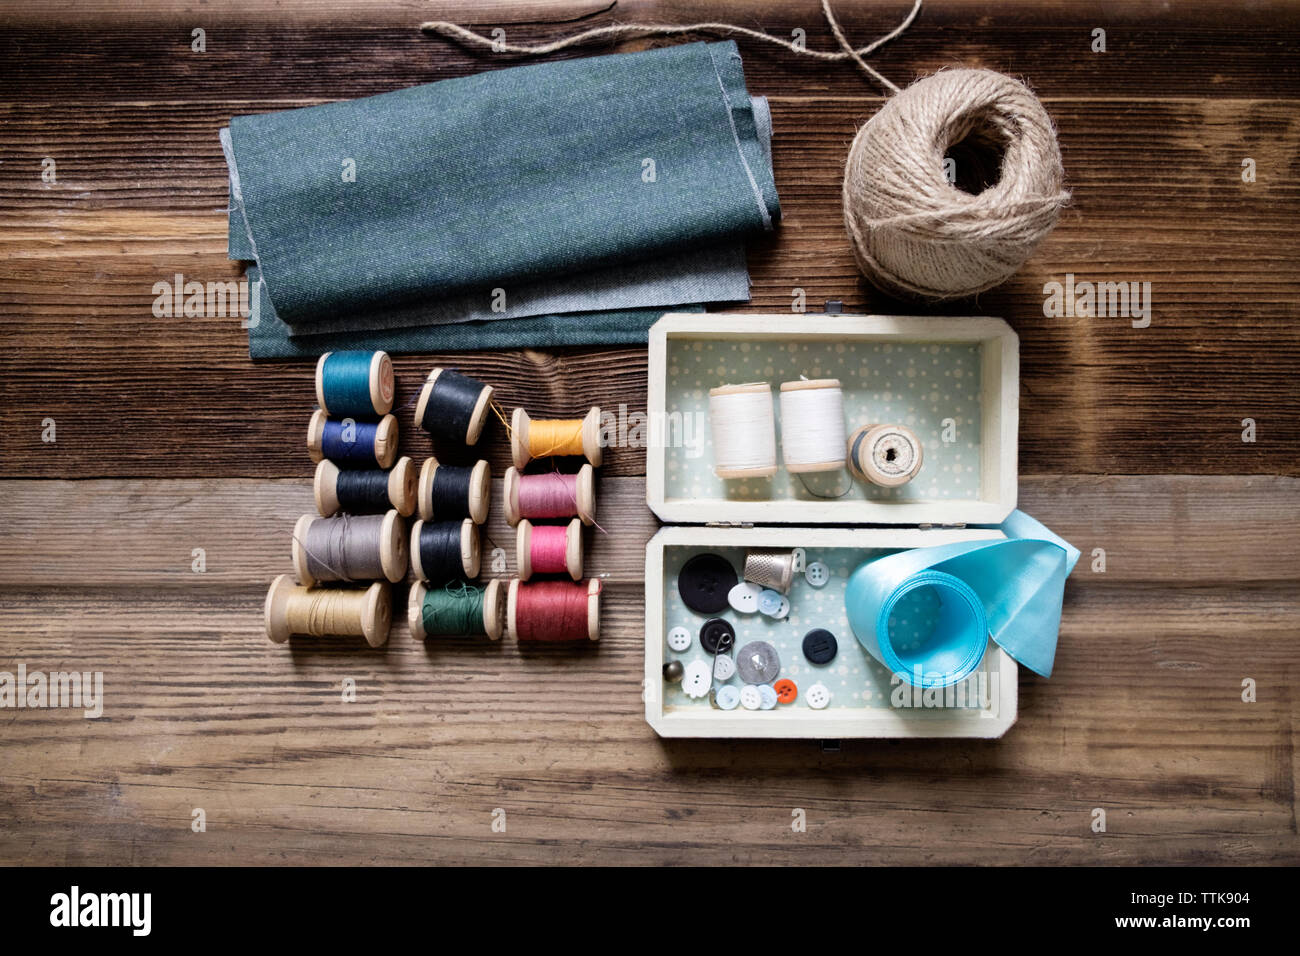 Overhead view of fabric with sewing equipment on table Stock Photo